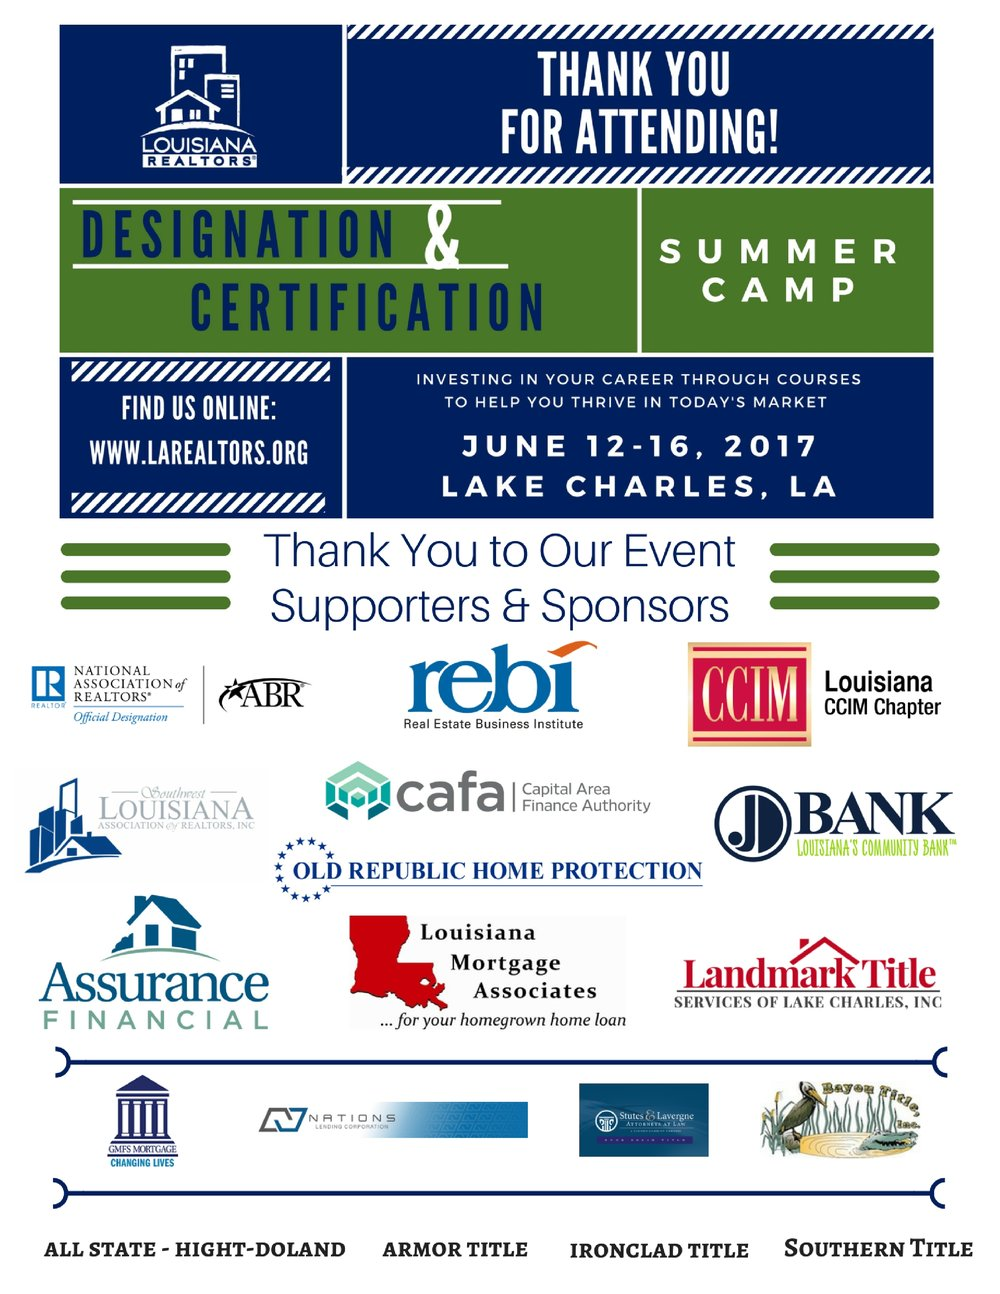 Refreshments and breaks throughout the week were made possible thanks to the support of these sponsors!